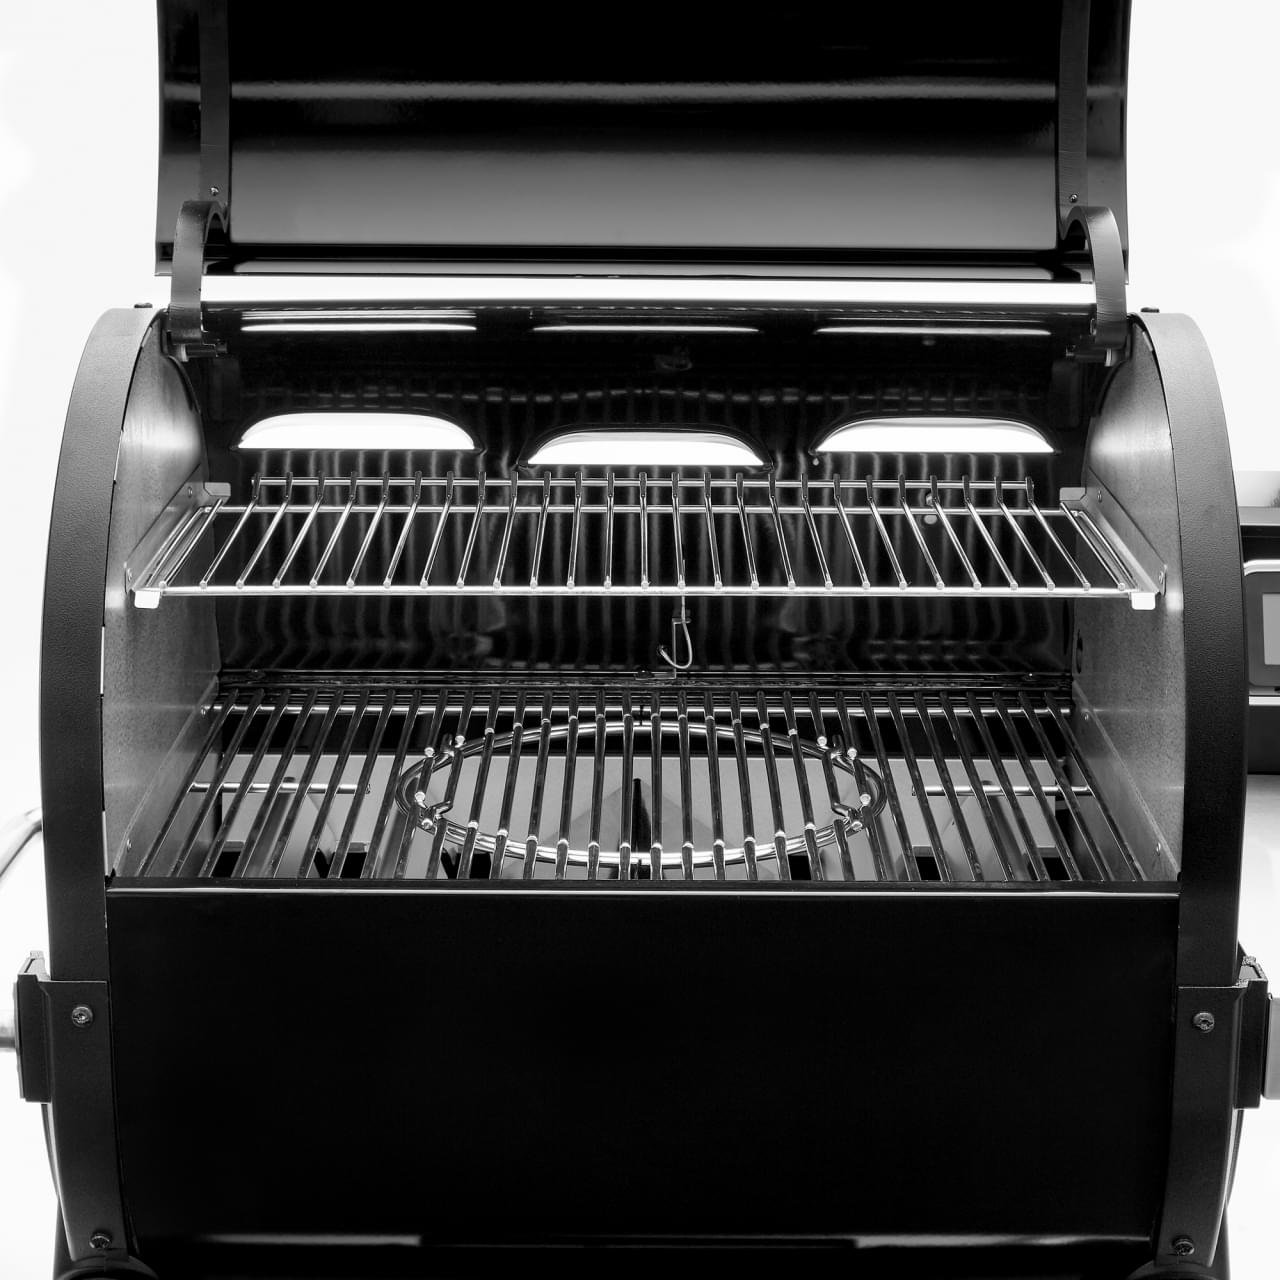 Weber SmokeFire EX4 GBS Wood Fired Pellet Barbecue